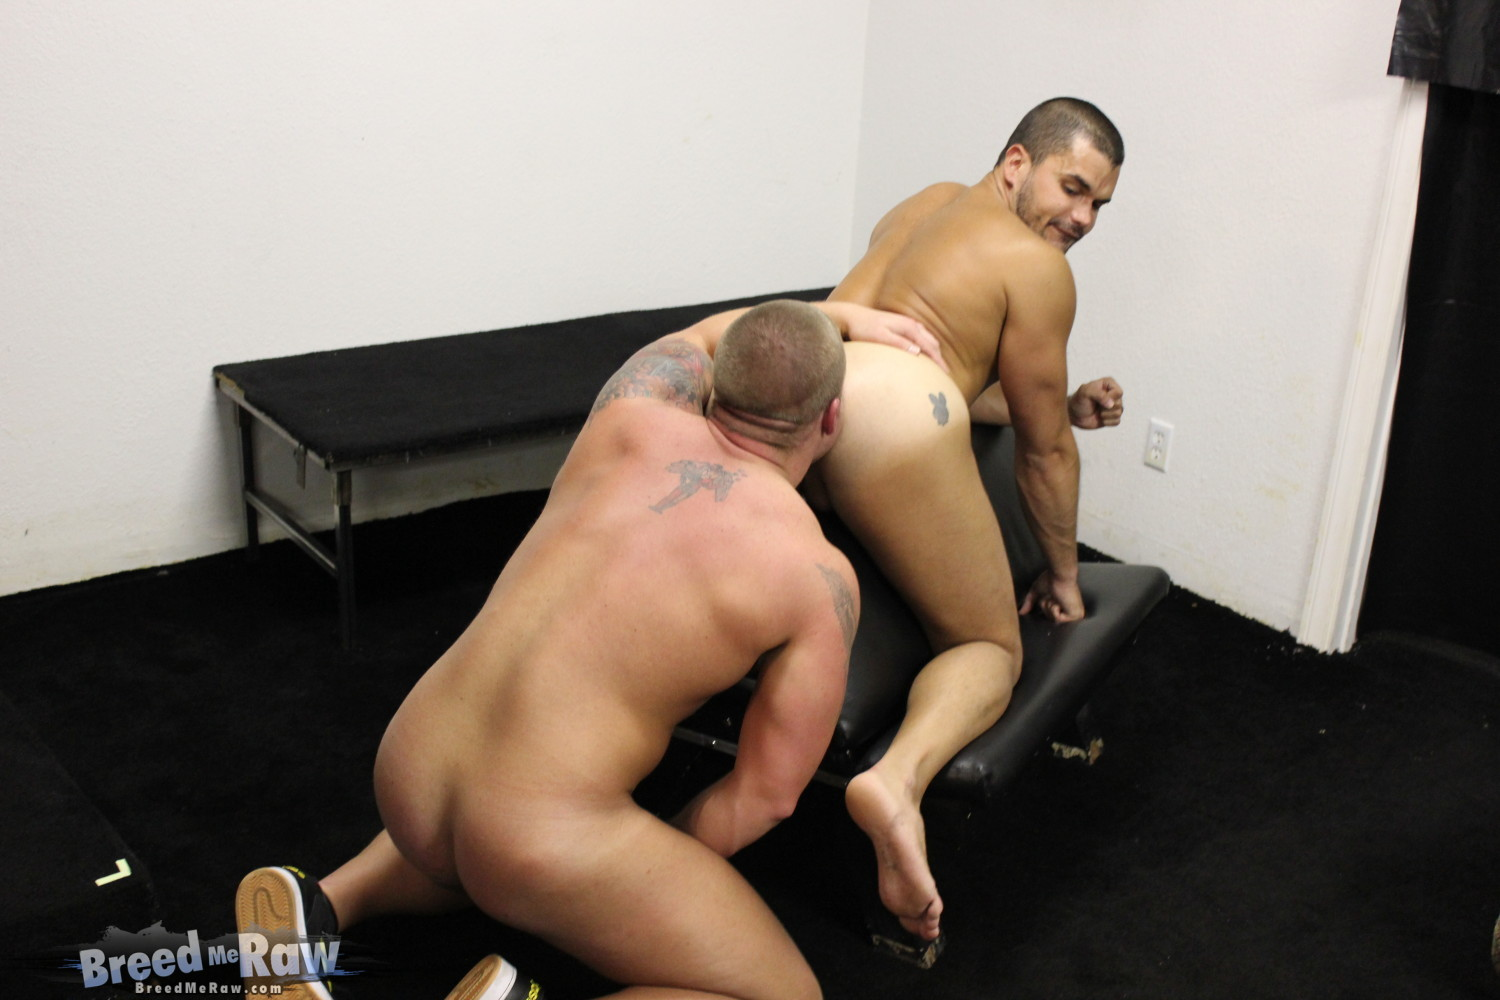 Raw fucked by an escort pt4 gay